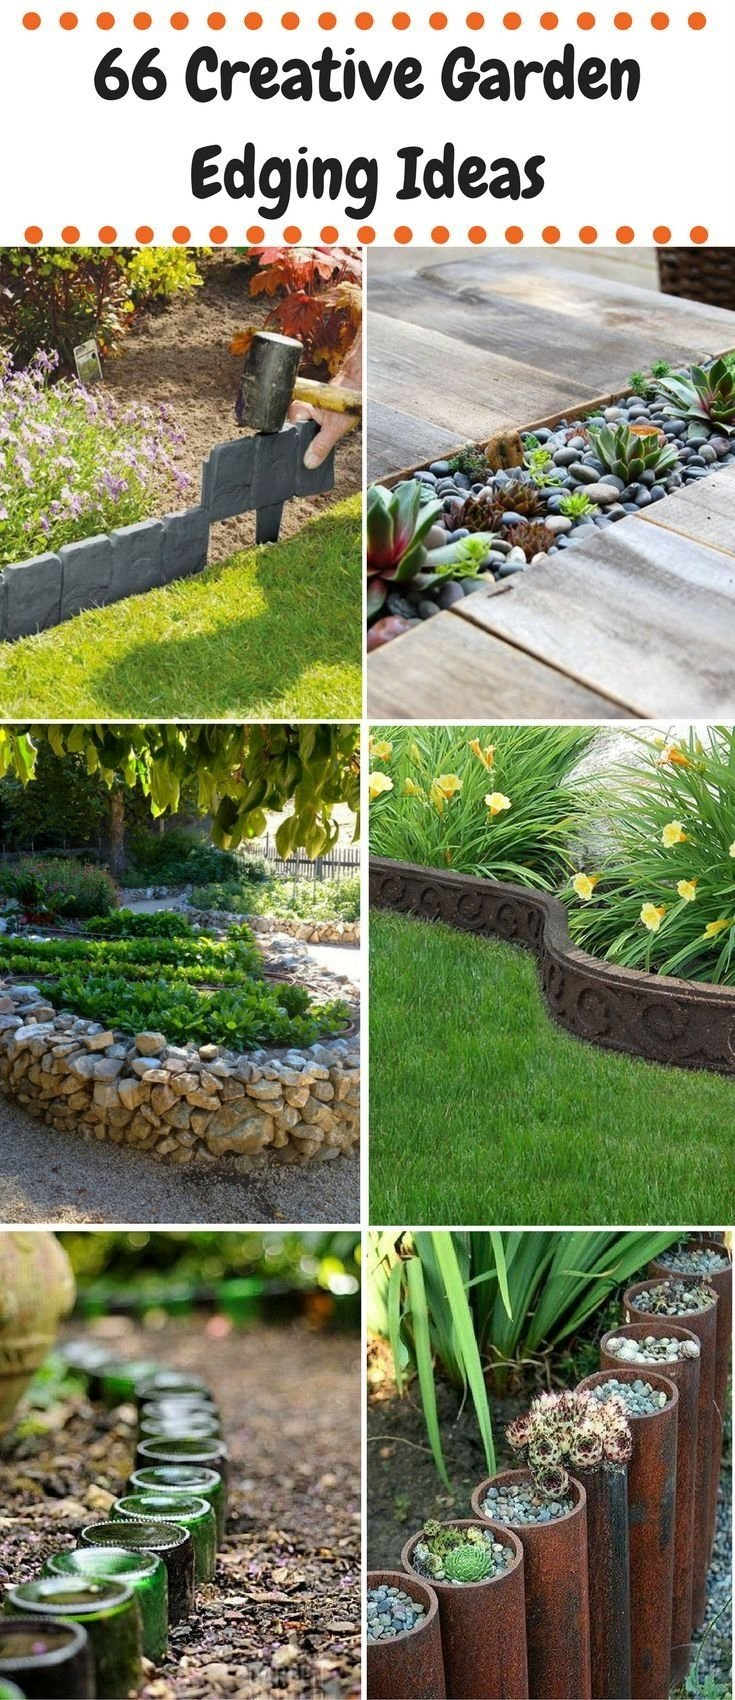 10 Stylish Edging Ideas For Flower Beds 609 best garden edging ideas images on pinterest garden edging